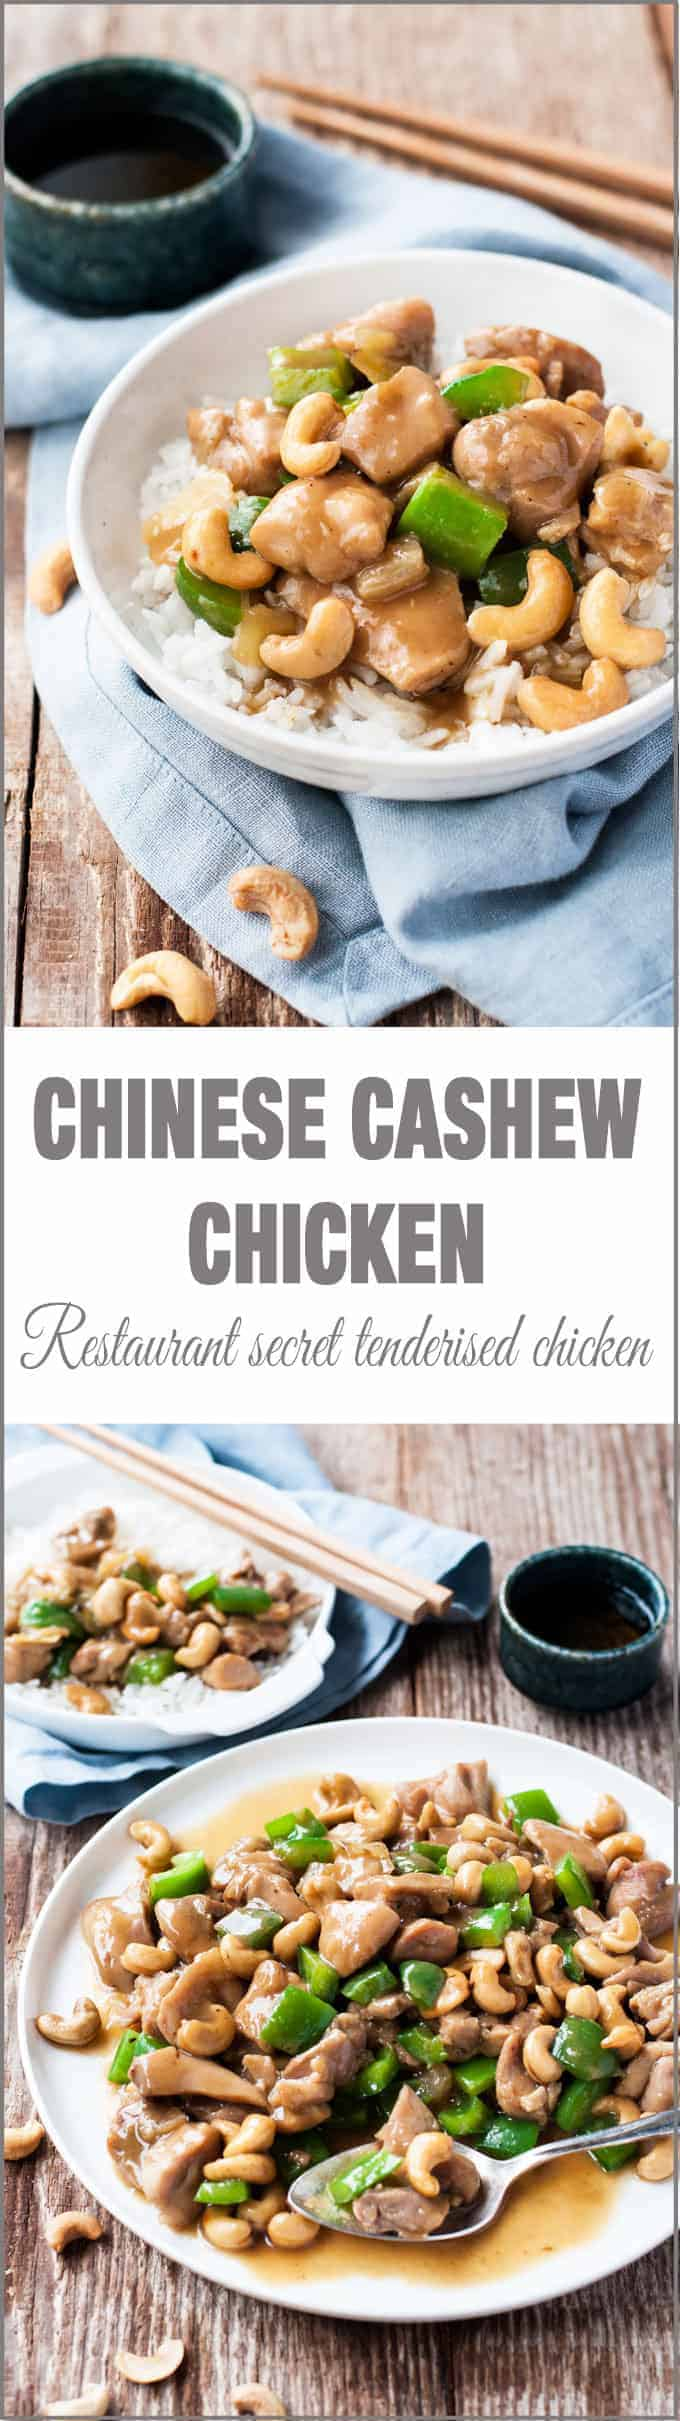 Chinese Cashew Chicken Stir Fry - Just like what you get at restaurants, INCLUDING tenderising the chicken!